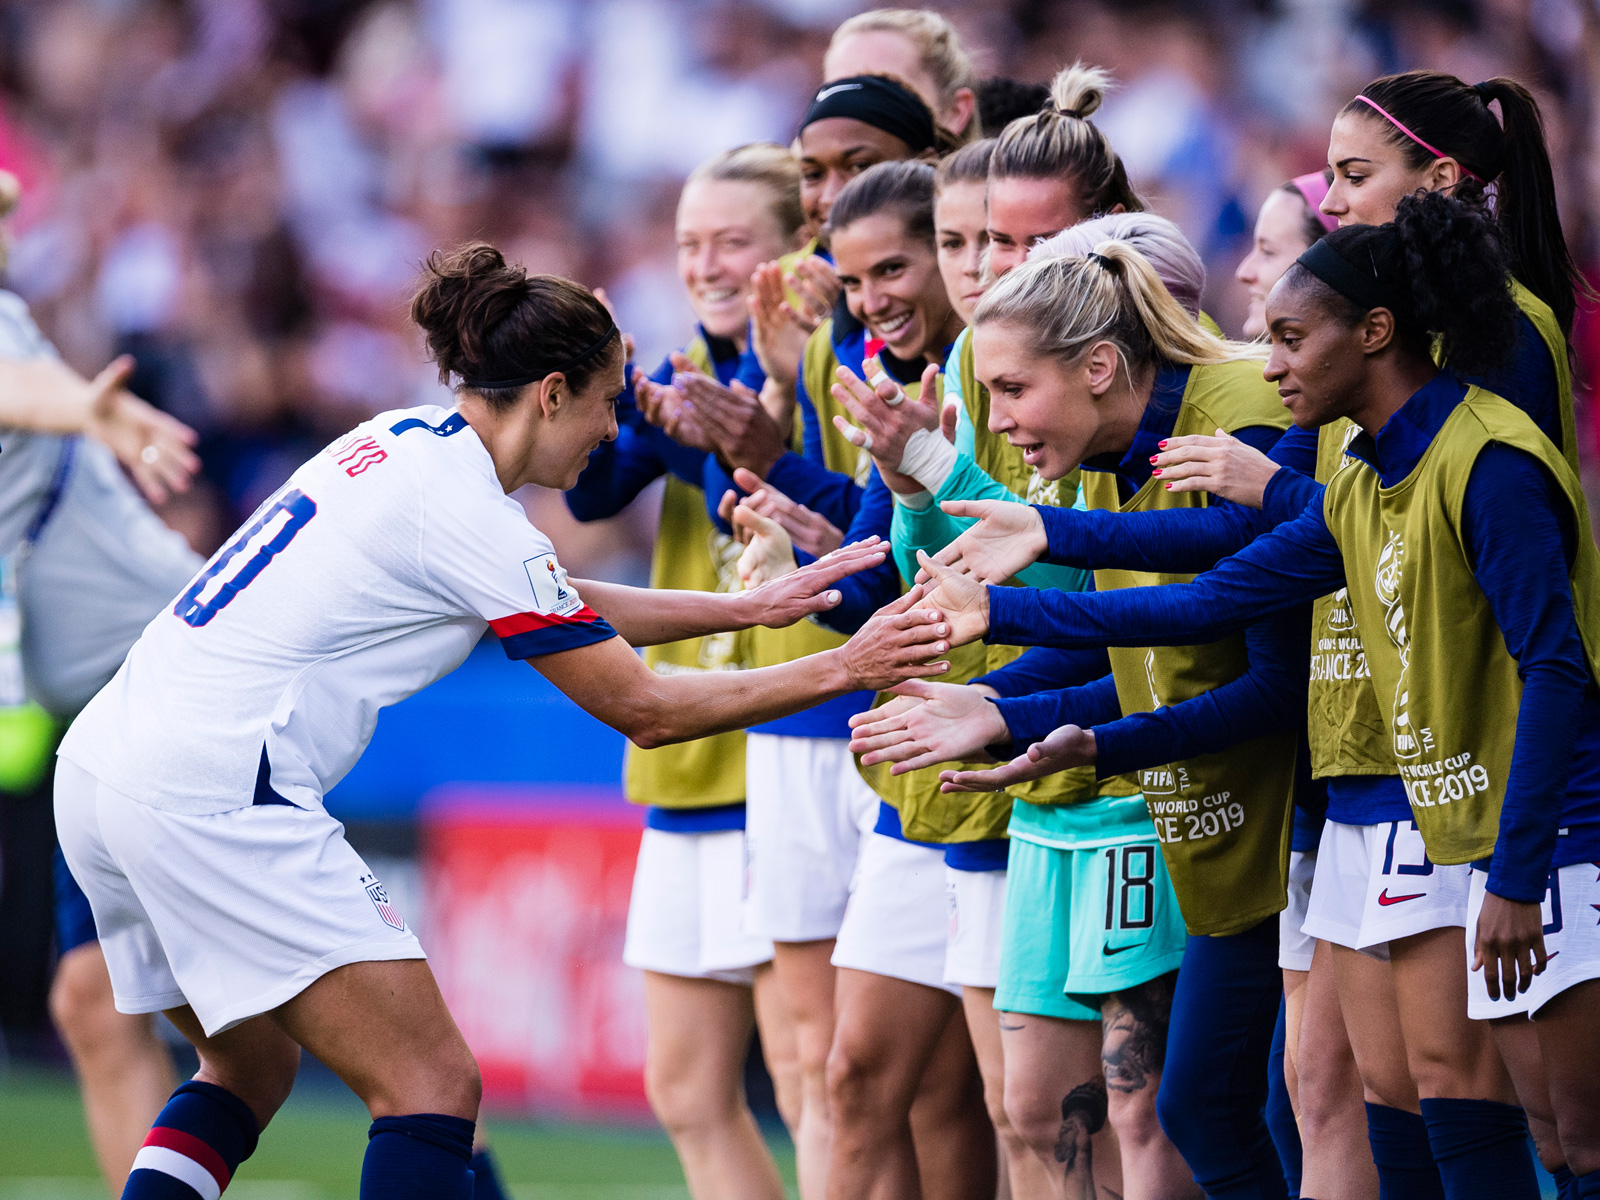 Carli Lloyd celebrates her goal vs. Chile with her USA teammates